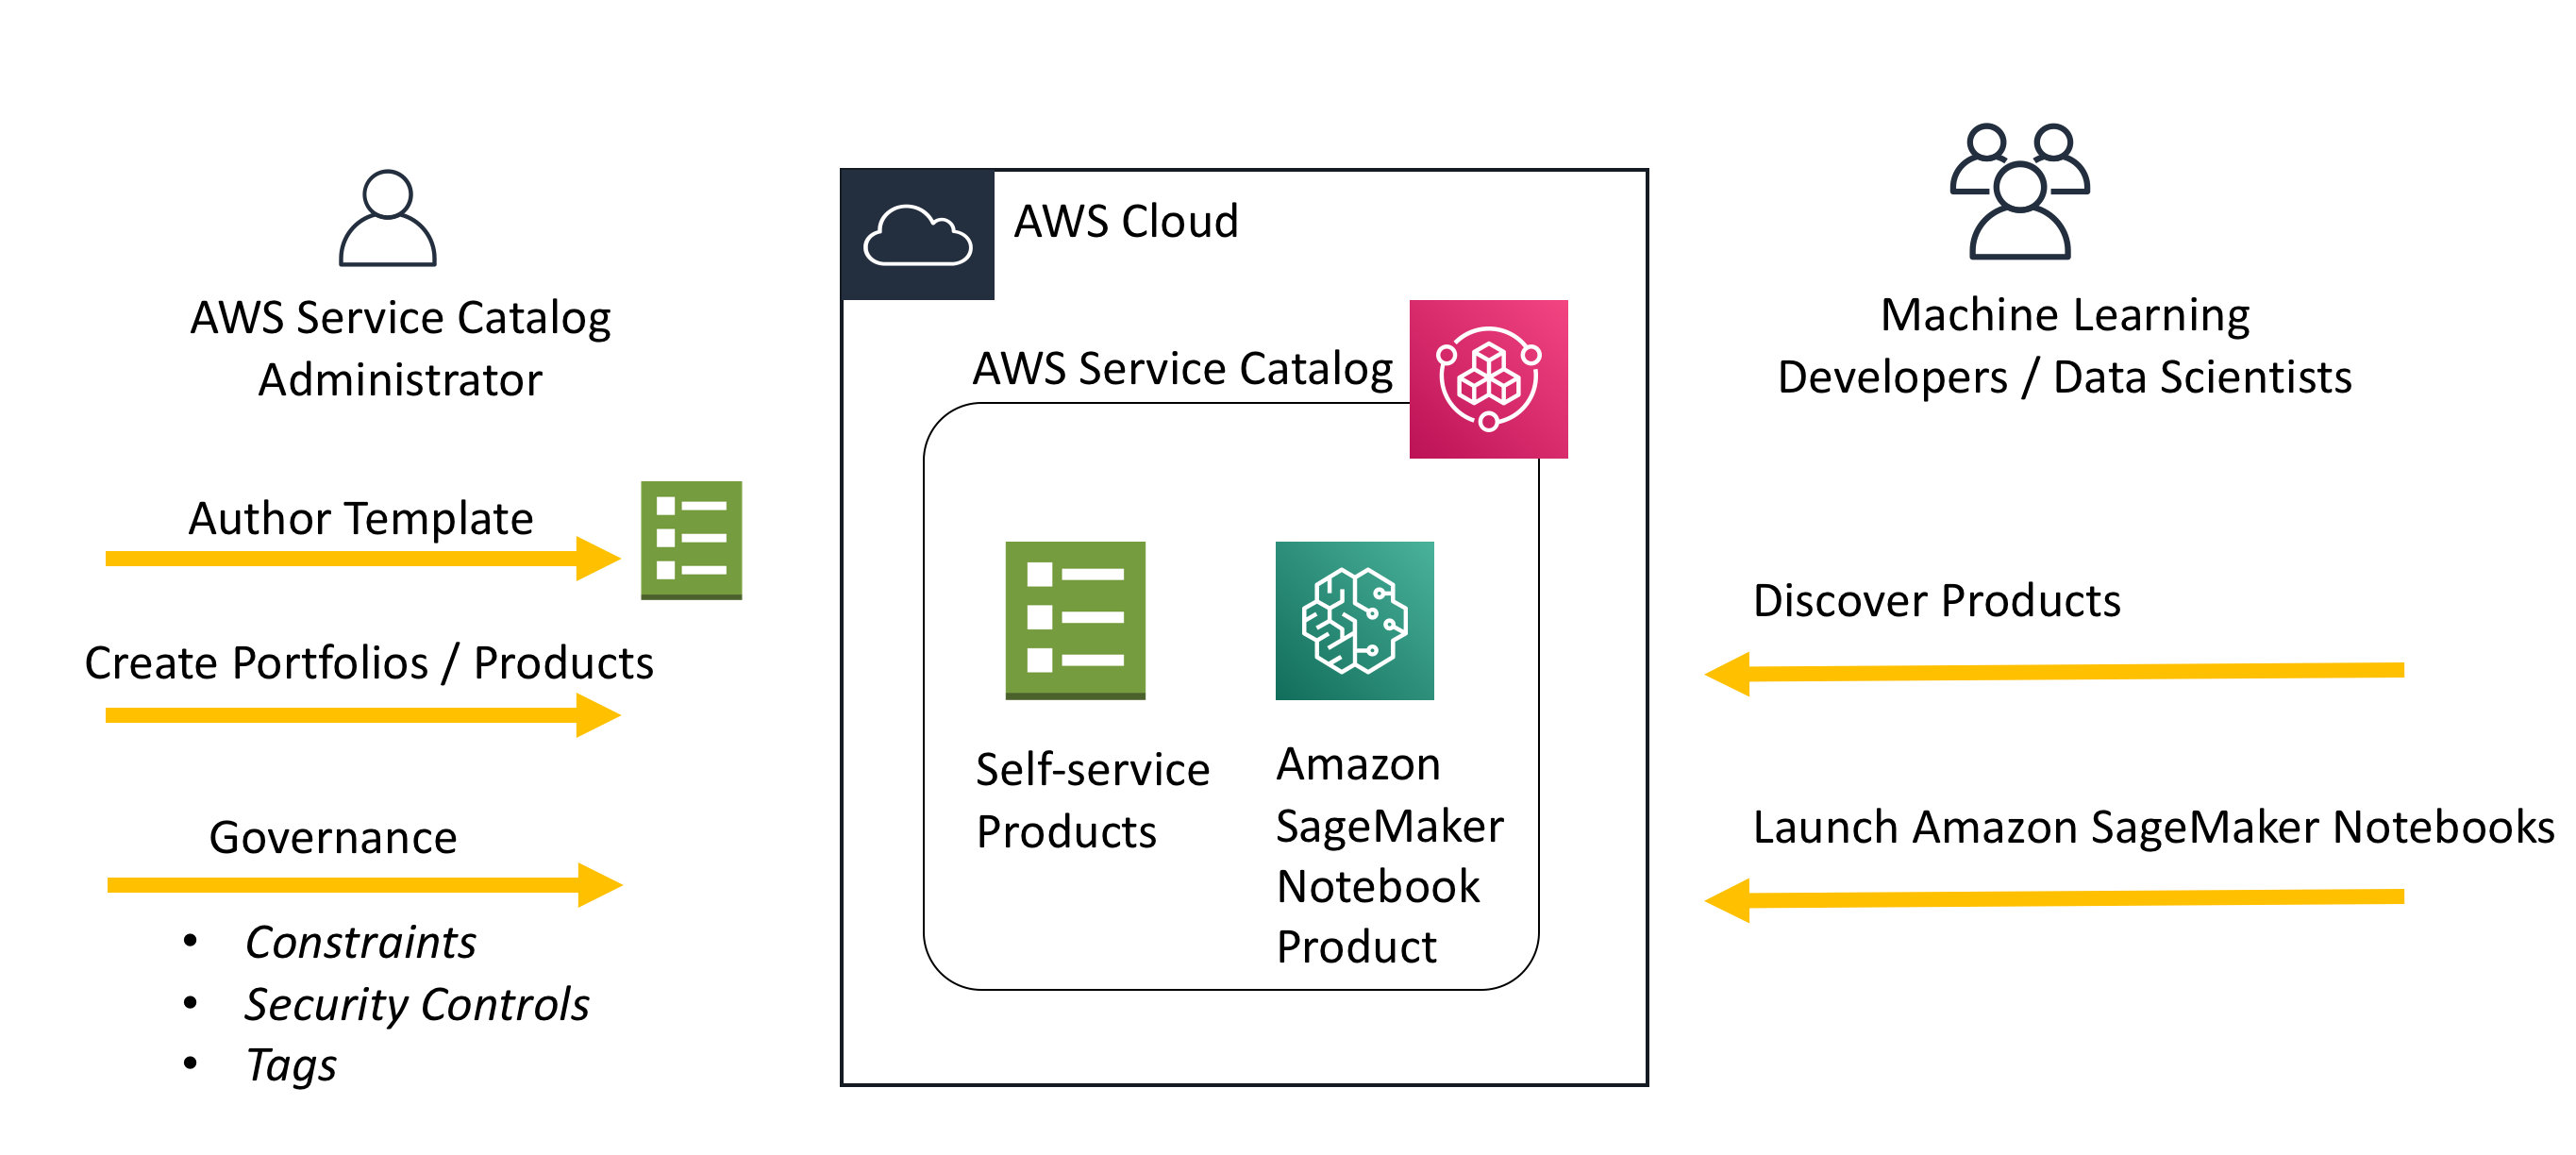 Enable self-service, secured data science using Amazon SageMaker